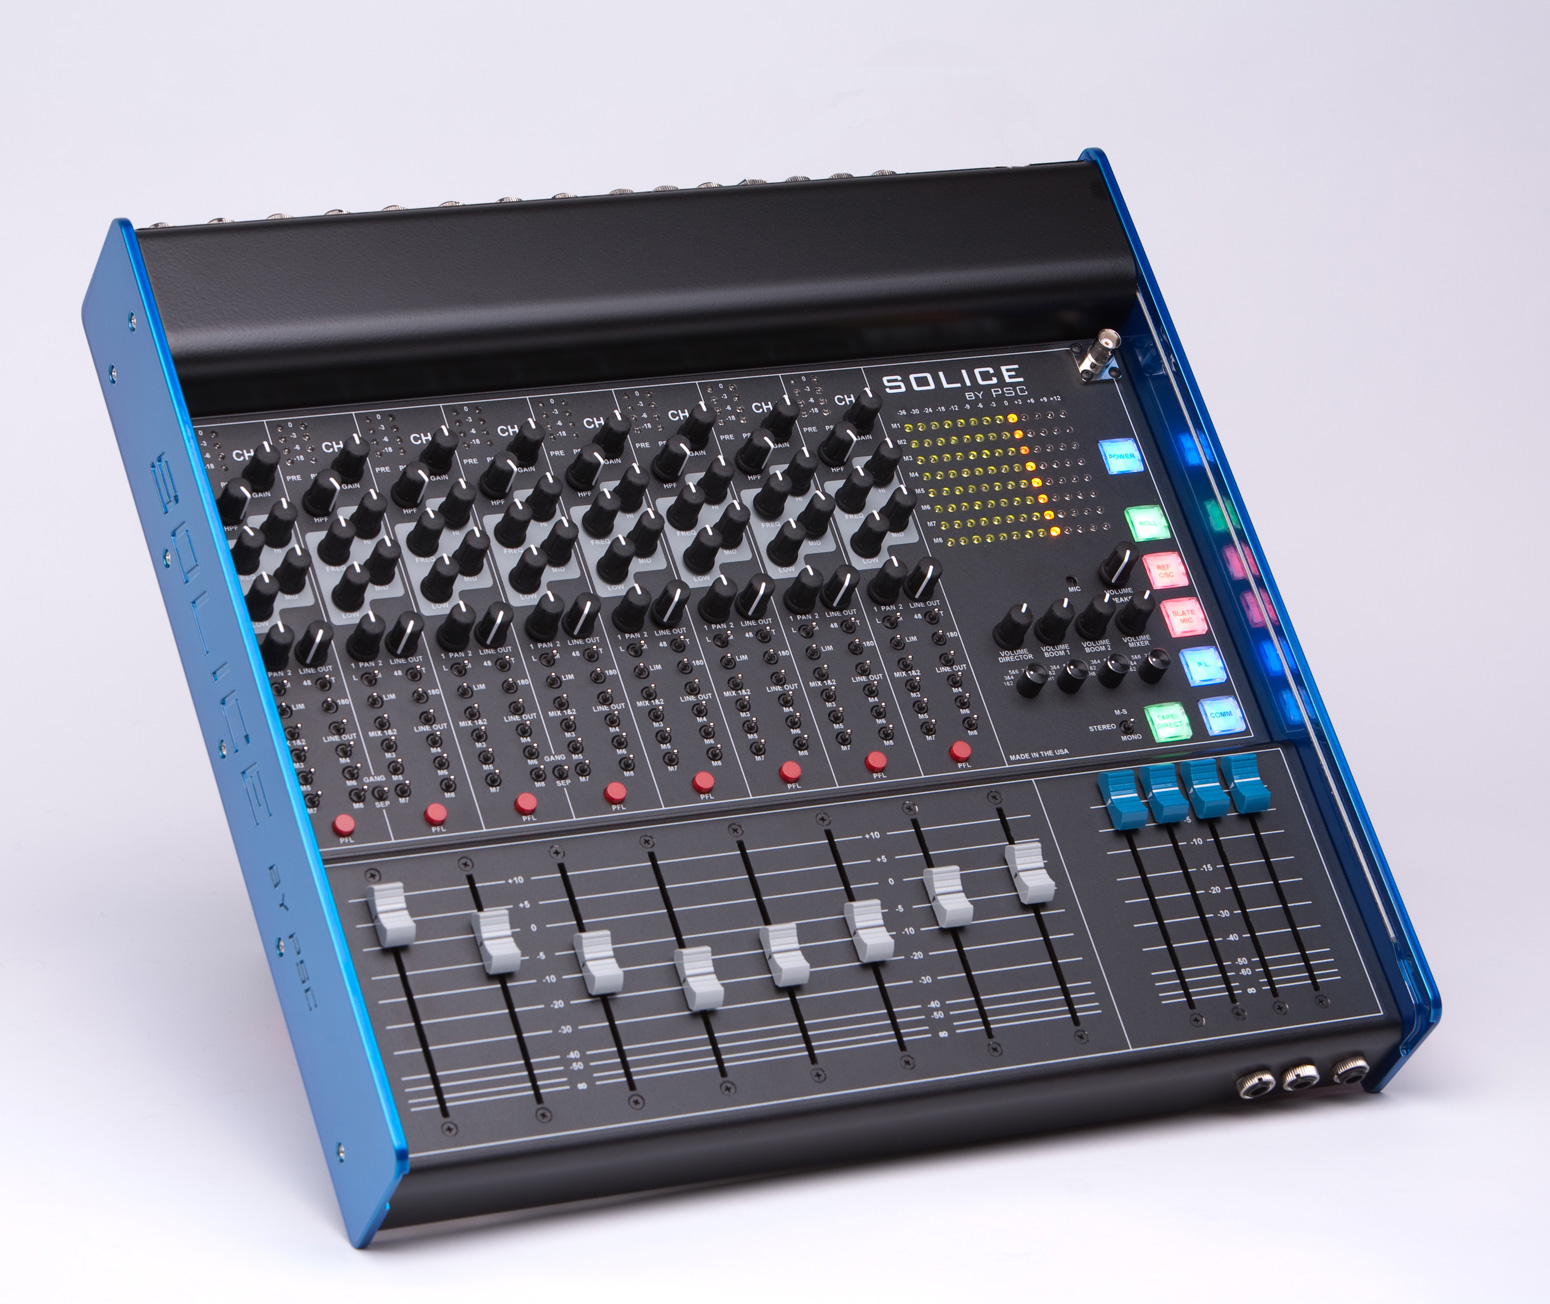 Psc Solice Solice 8 Channel Audio Mixer Pro Sound Com